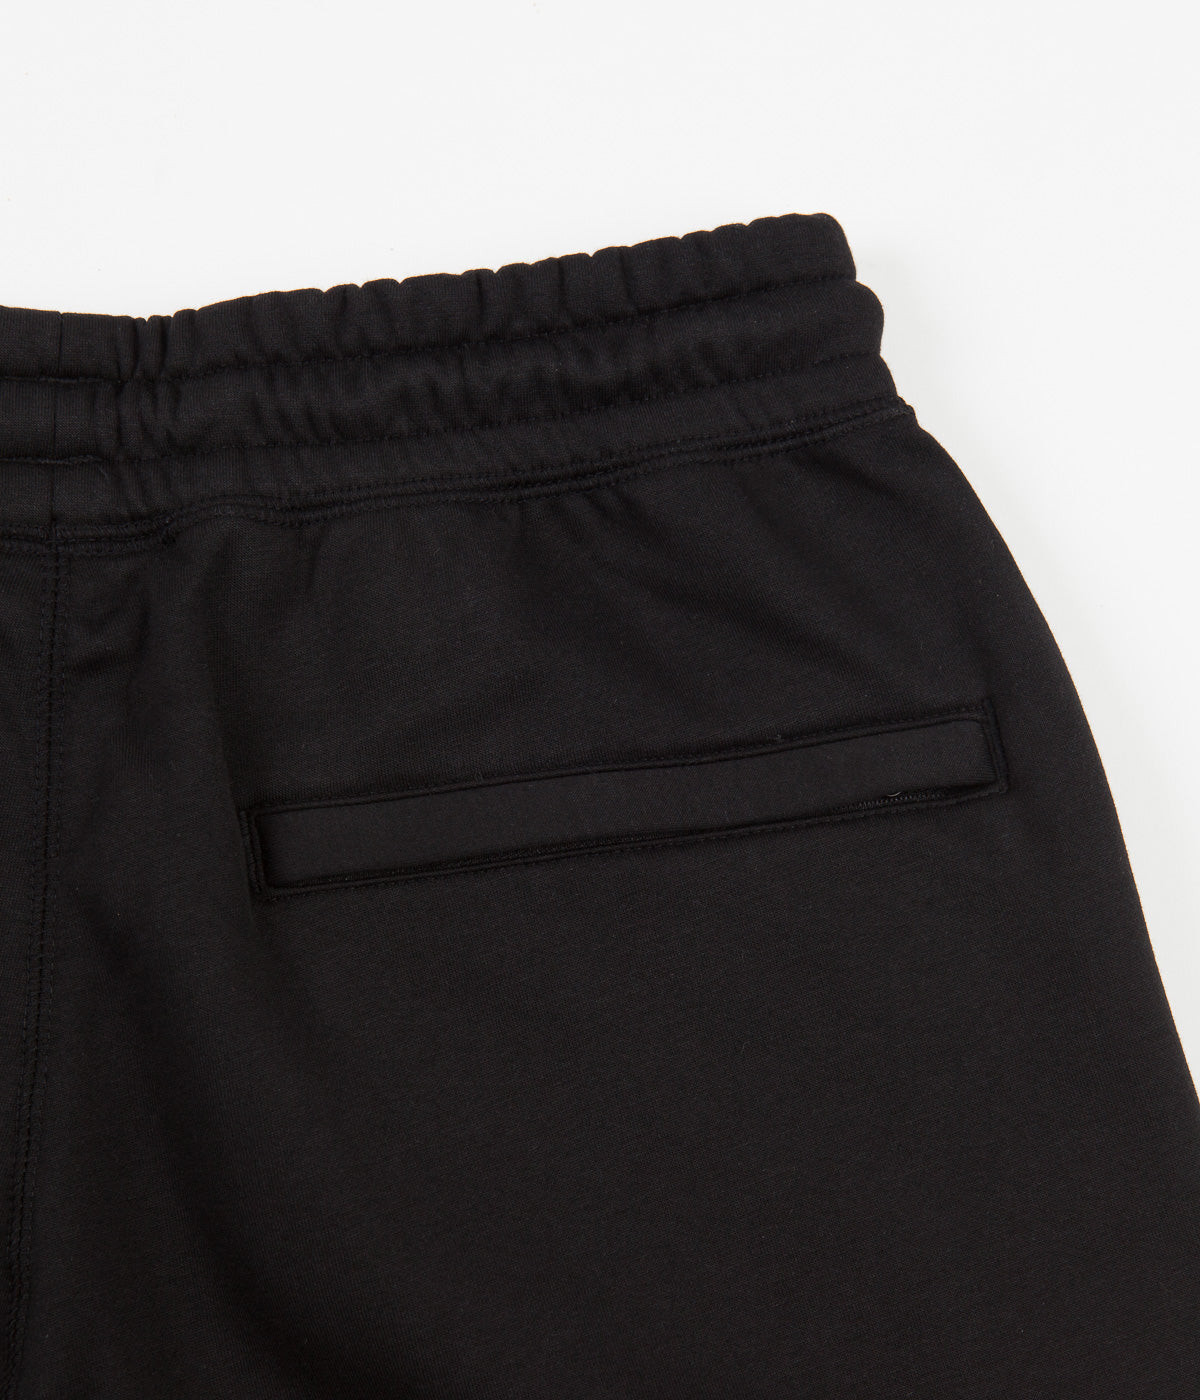 Adidas Tech Sweatpants - Black / Carbon